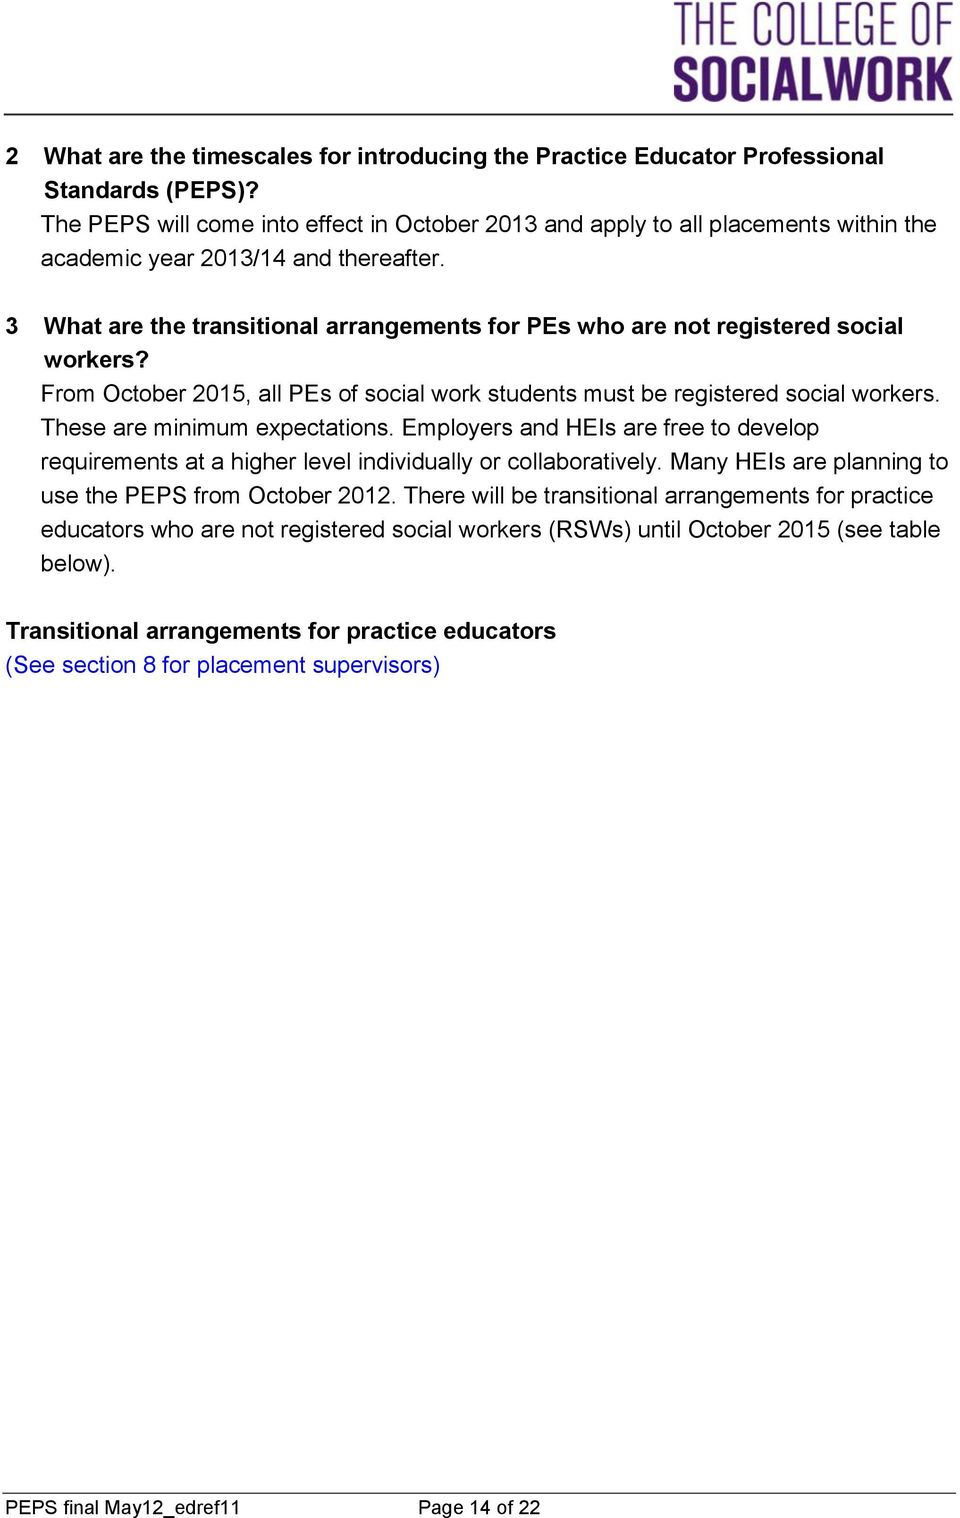 3 What are the transitional arrangements for PEs who are not registered social workers? From October 2015, all PEs of social work students must be registered social workers.